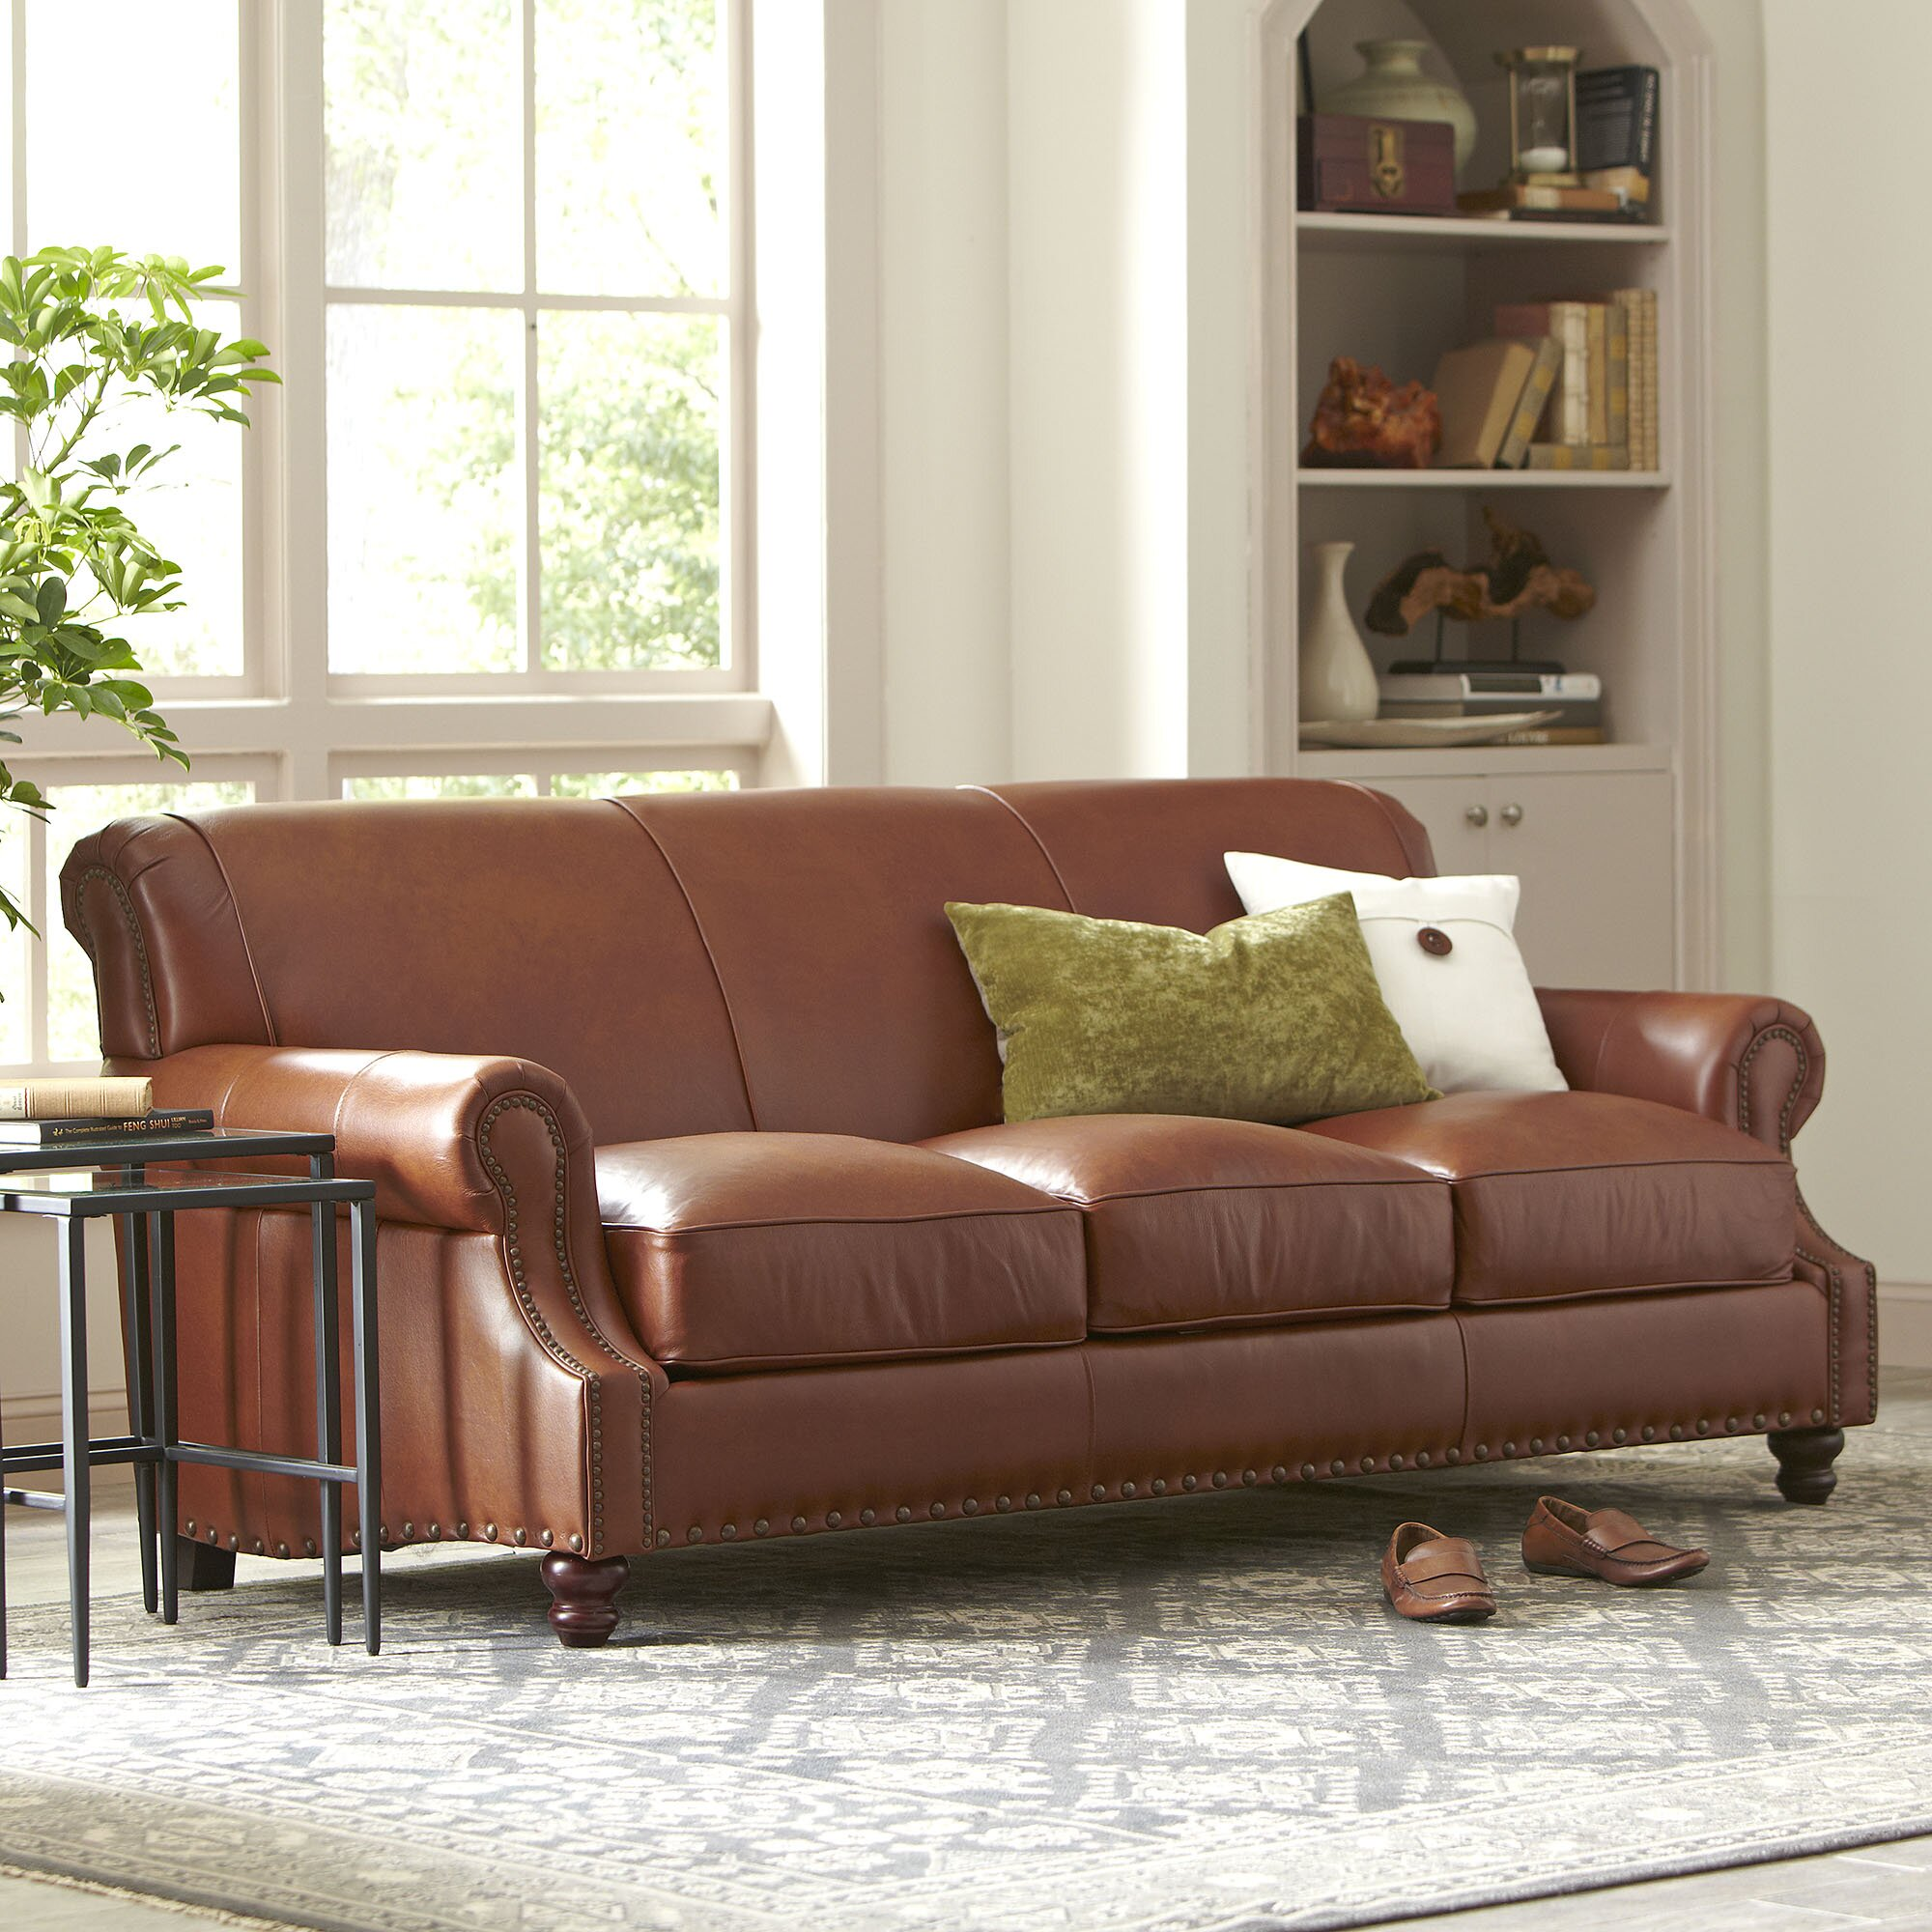 Living Room Colors With Brown Leather Furniture